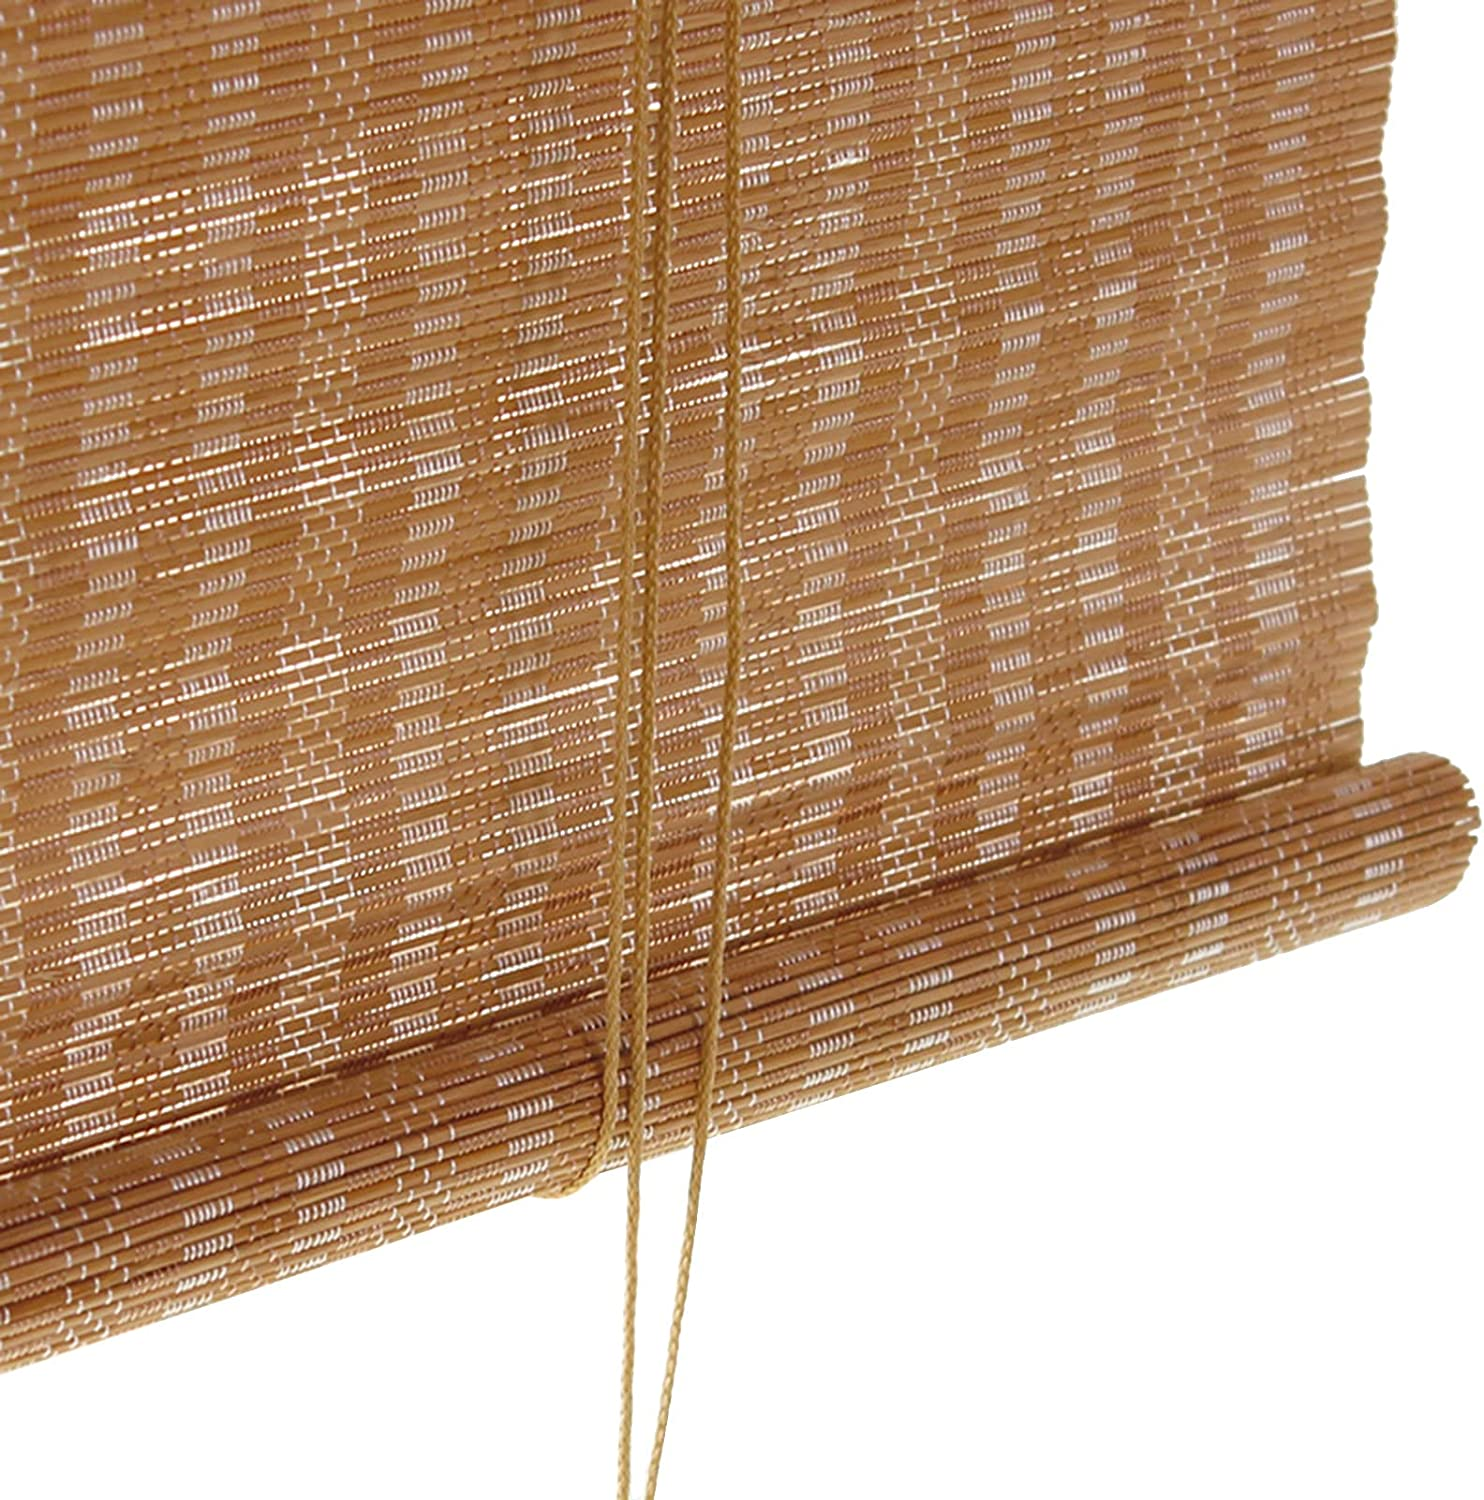 Roller Blinds Bamboo Roll Up Shades Wo 85% for Our shop OFFers the Free shipping best service Blackout Windows